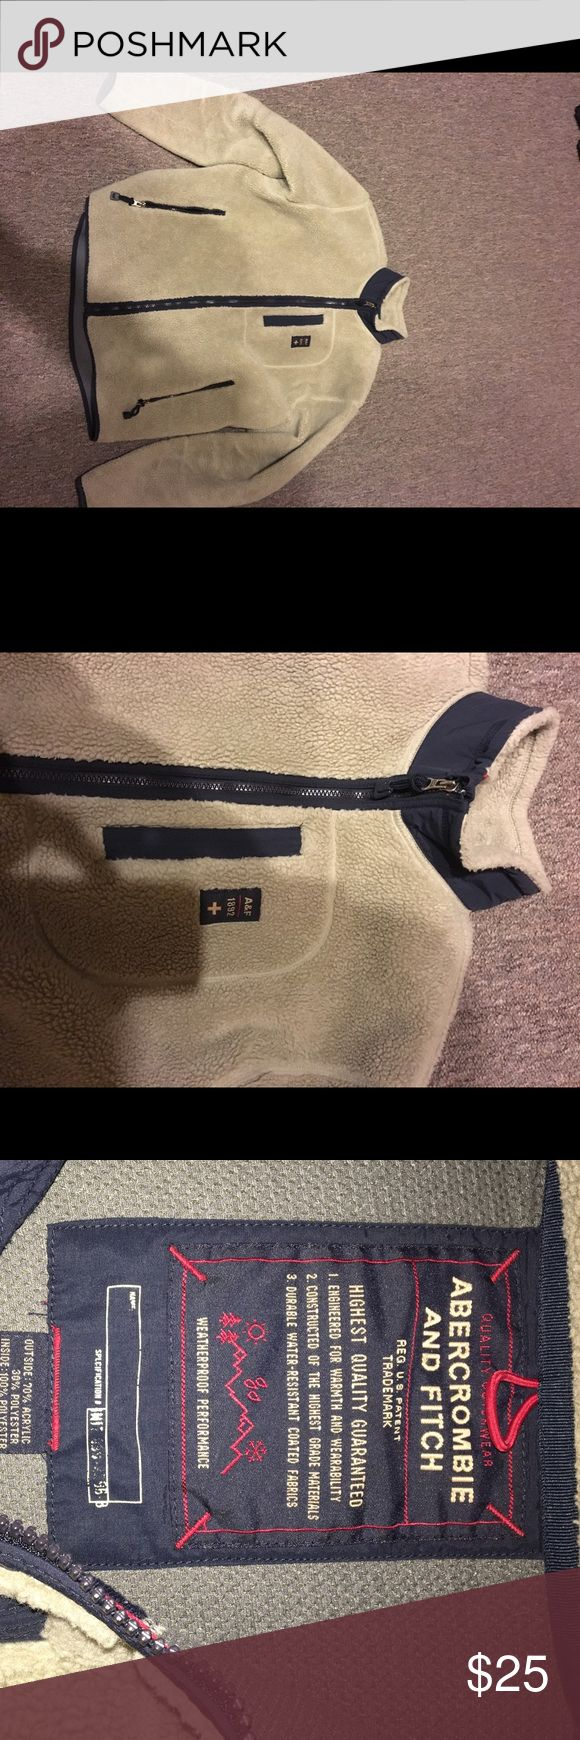 Abercrombie and fitch fleece jacket Original Abercrombie and fitch fleece/wool jacket.  Very warm.  Still in good shape. Abercrombie & Fitch Jackets & Coats Puffers